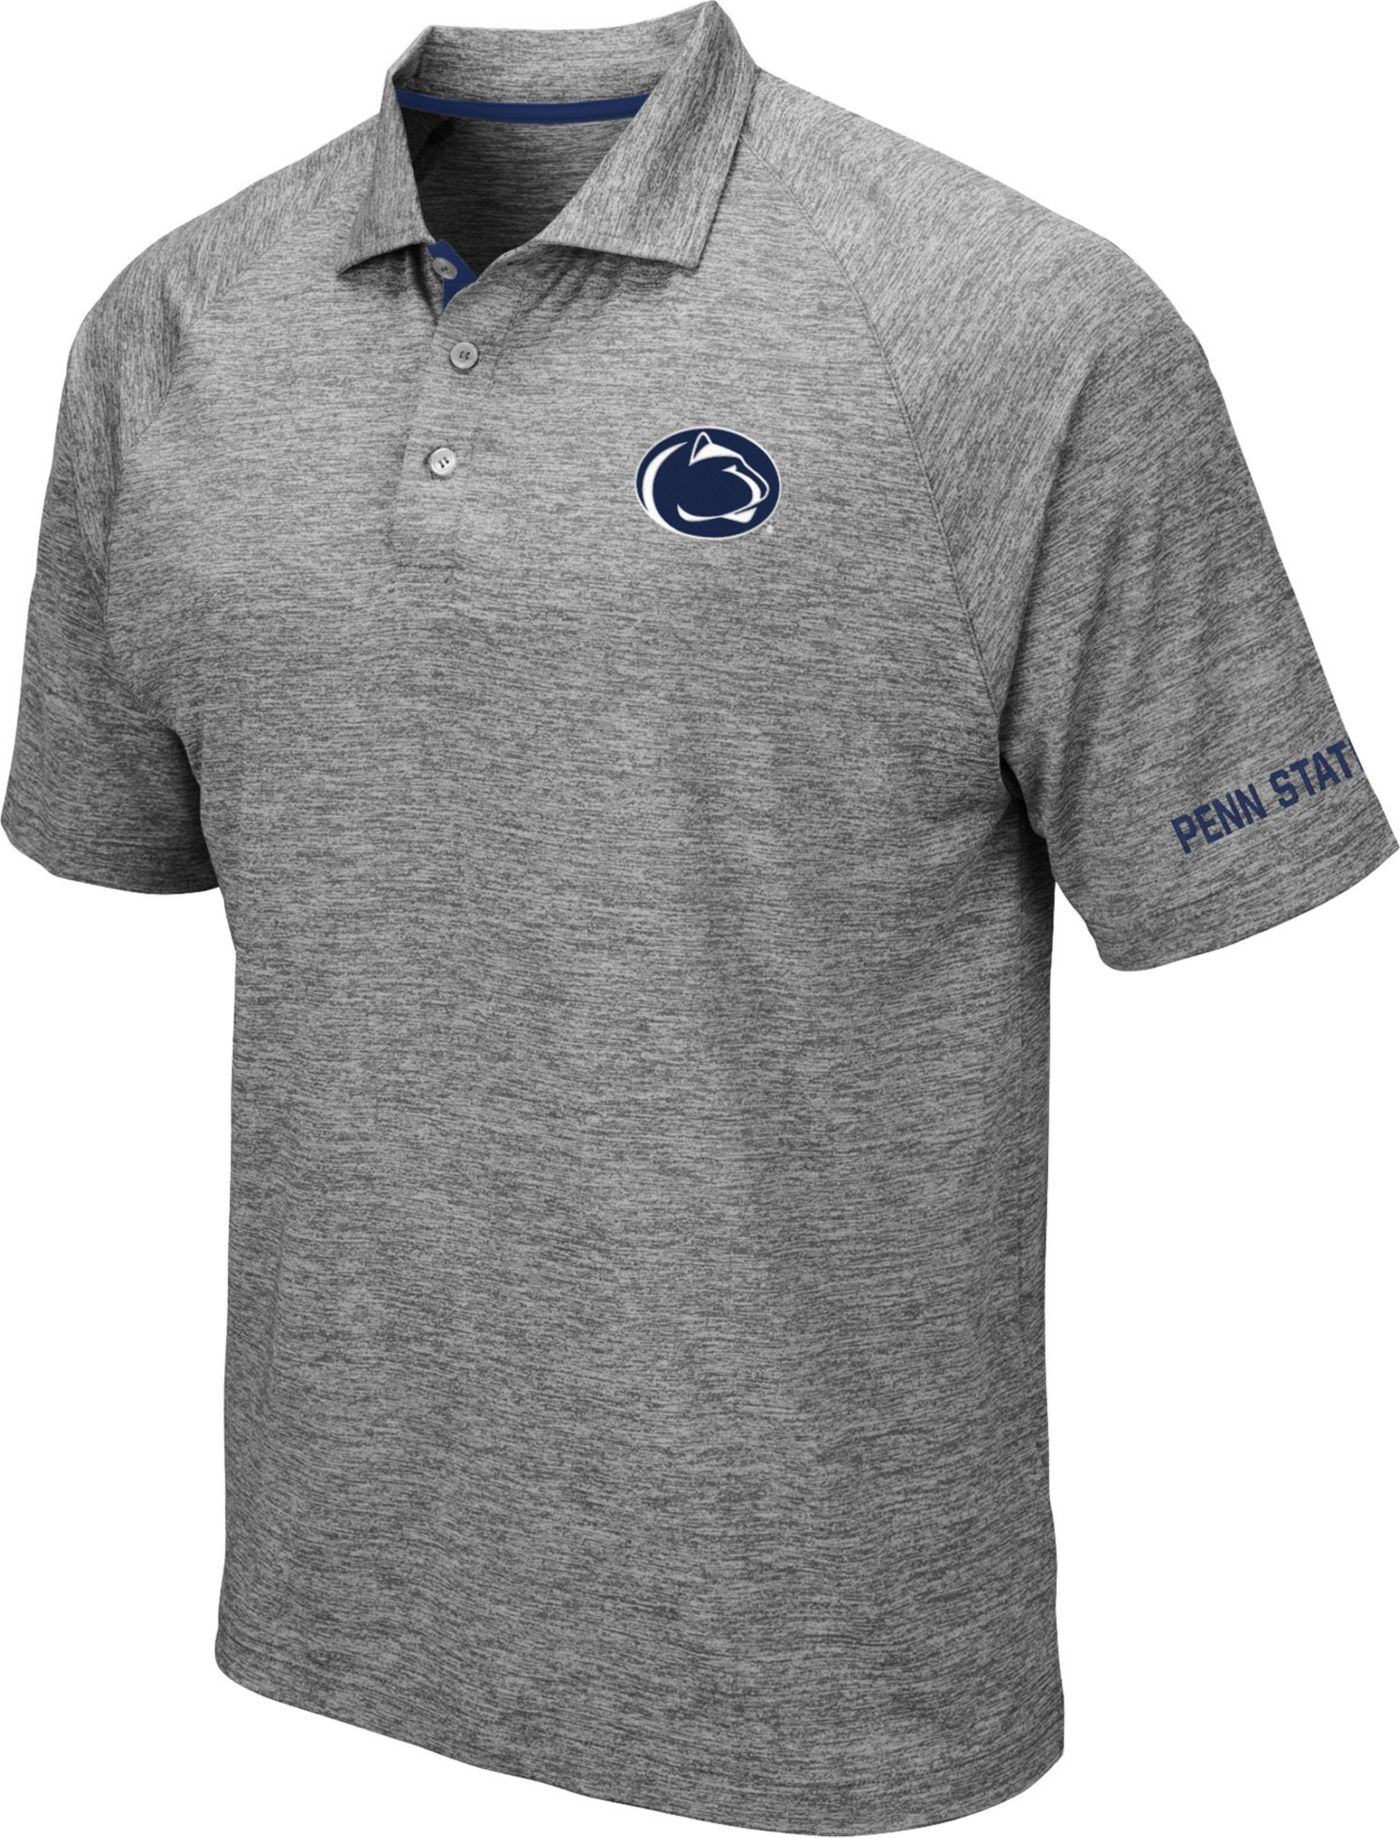 Colosseum Men's Penn State Nittany Lions Grey Chip Shot Polo